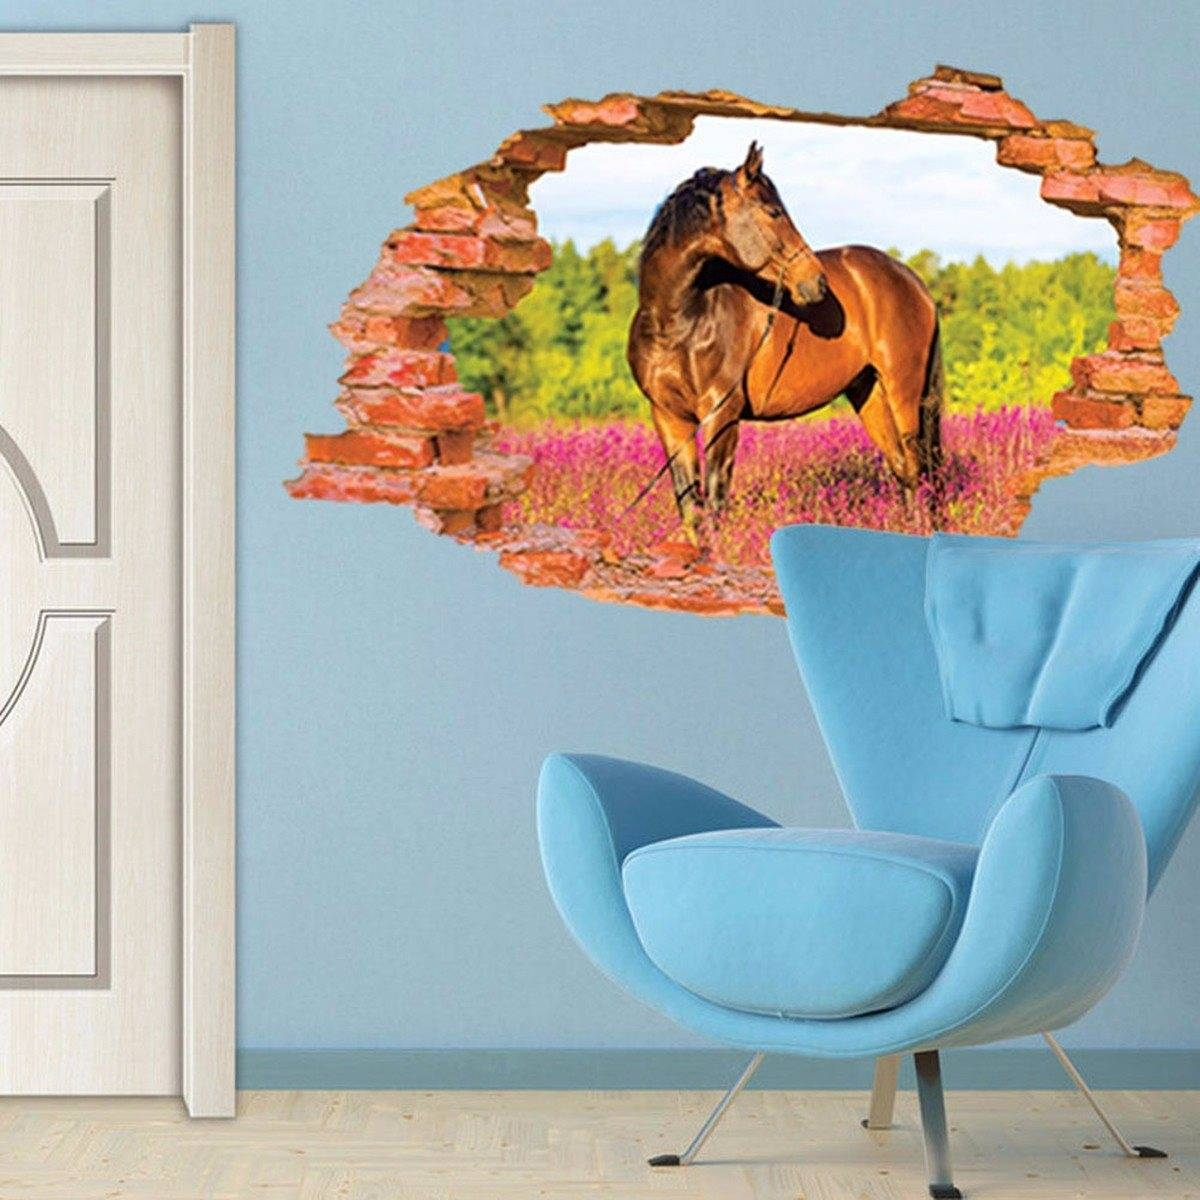 Removable Vinyl 3D Broken Horse Animal Wall Stickers Landscape With Regard To Most Up To Date 3DAnimal Wall Art (View 17 of 20)